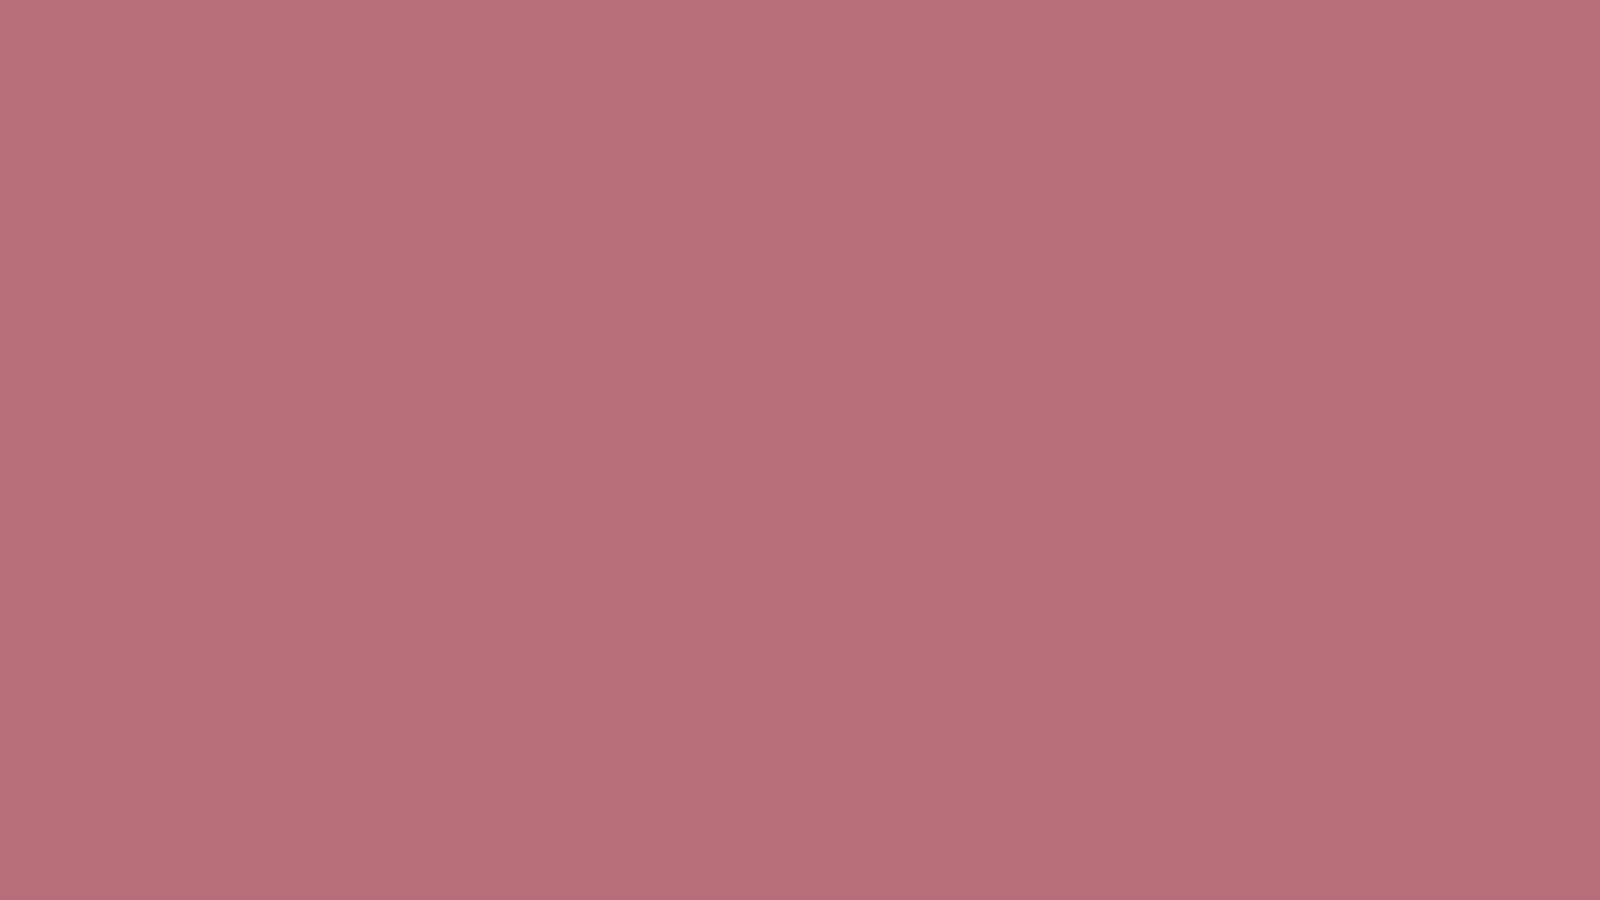 1600x900 Rose Gold Solid Color Background